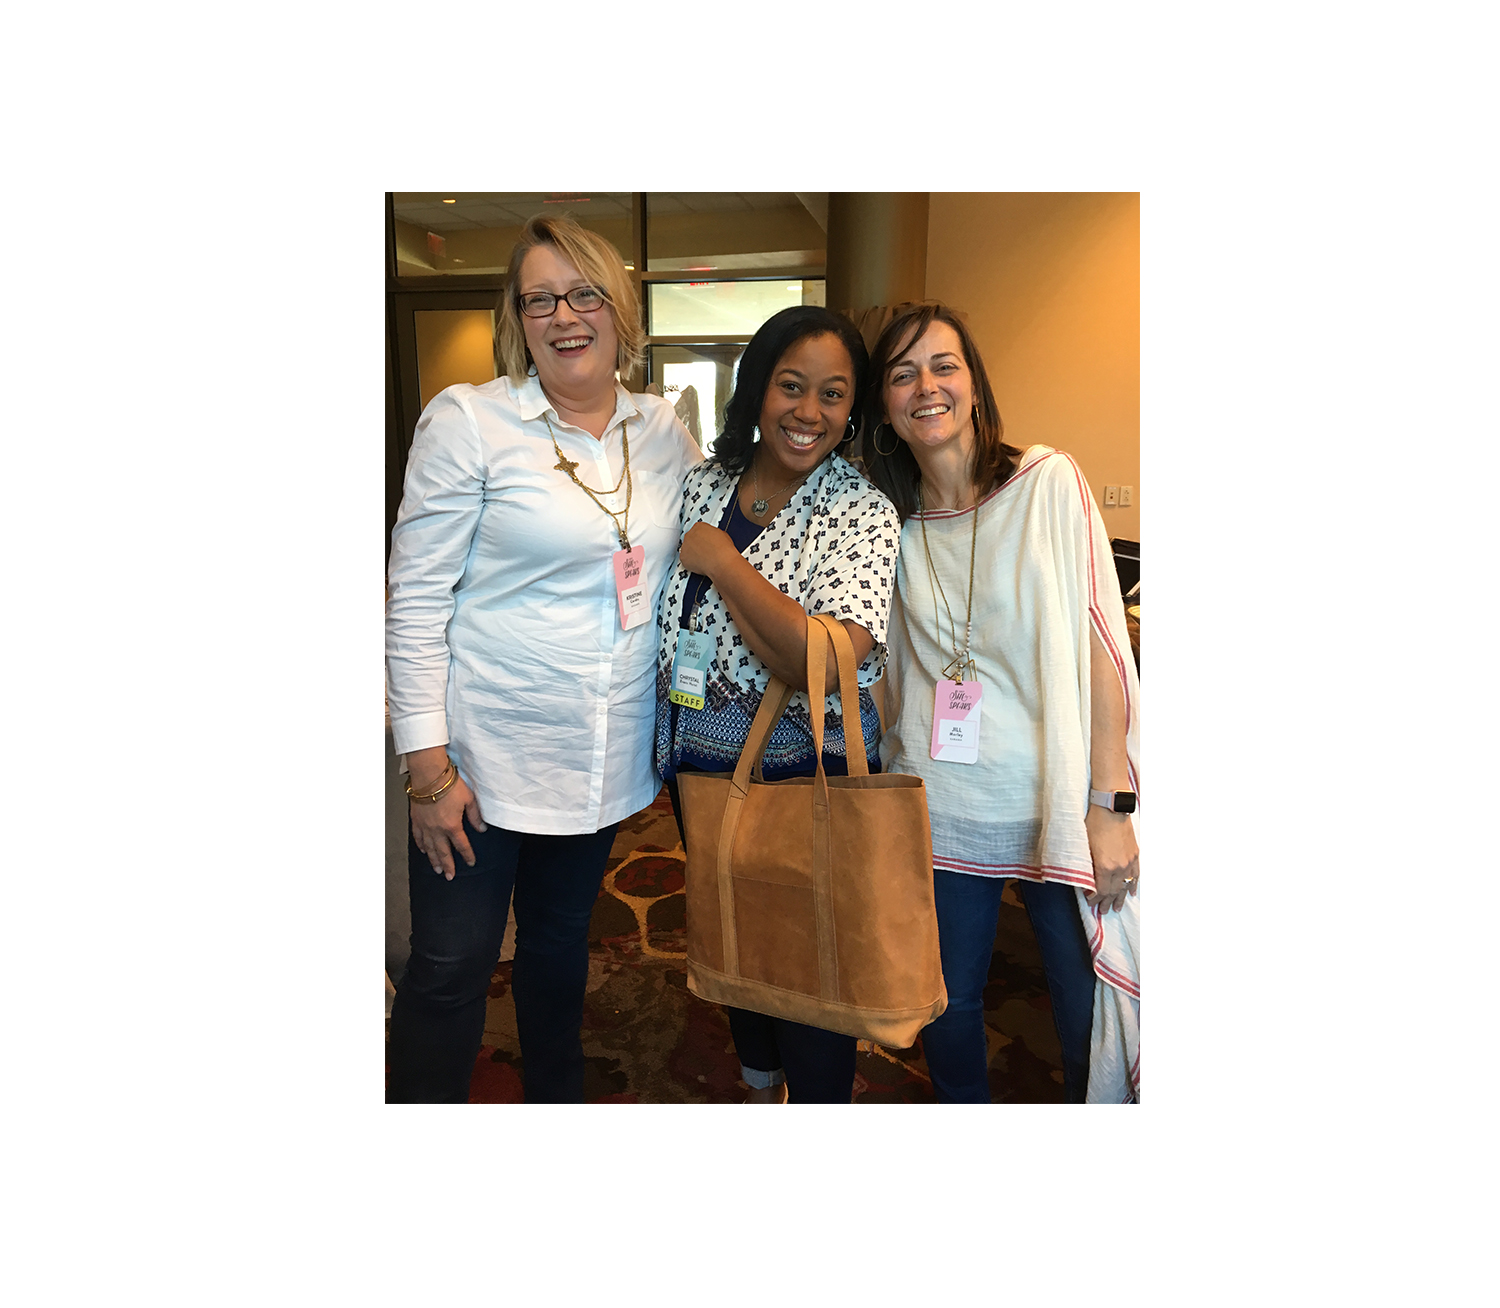 Karama Executive Directors Kristine Cordts and Jill Morley pose with Chrystal Evans Hurst, best selling author of 'Kingdom Woman', during a session break with the beloved large Addis Tote in Camel.